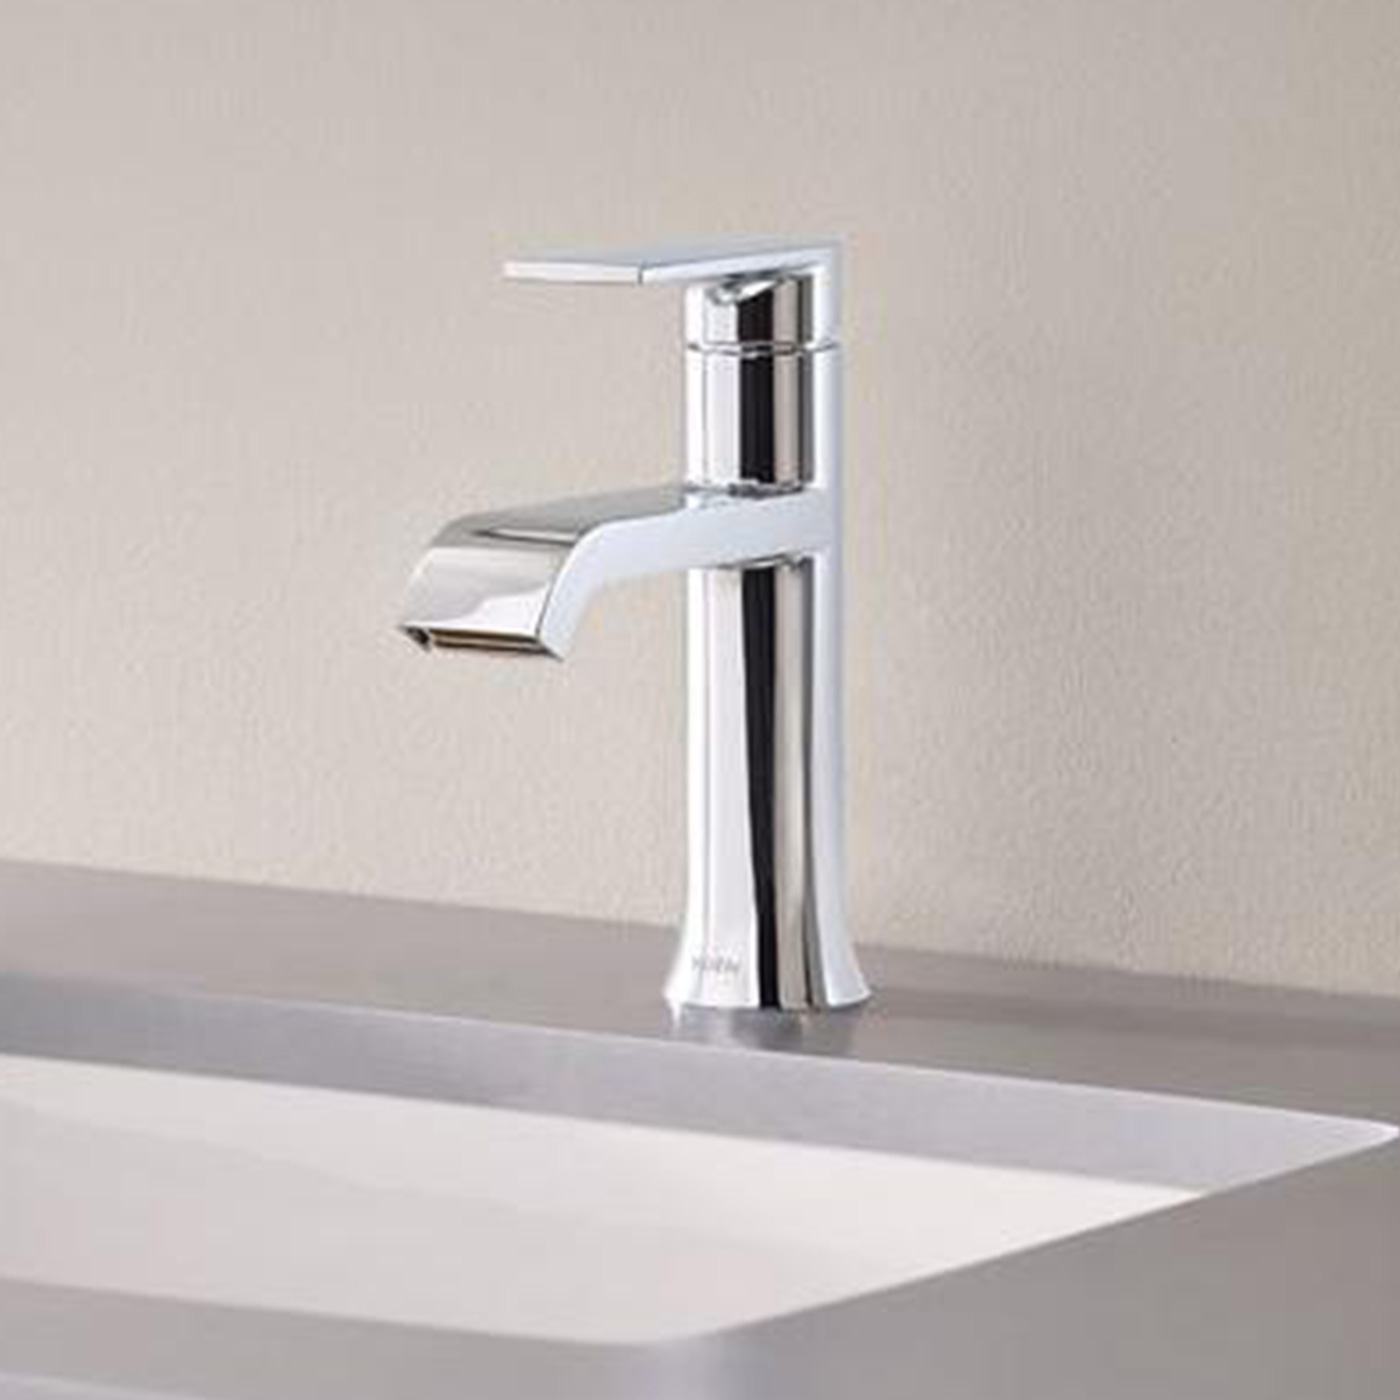 single handle sink faucets - Cheap Bathroom Faucets